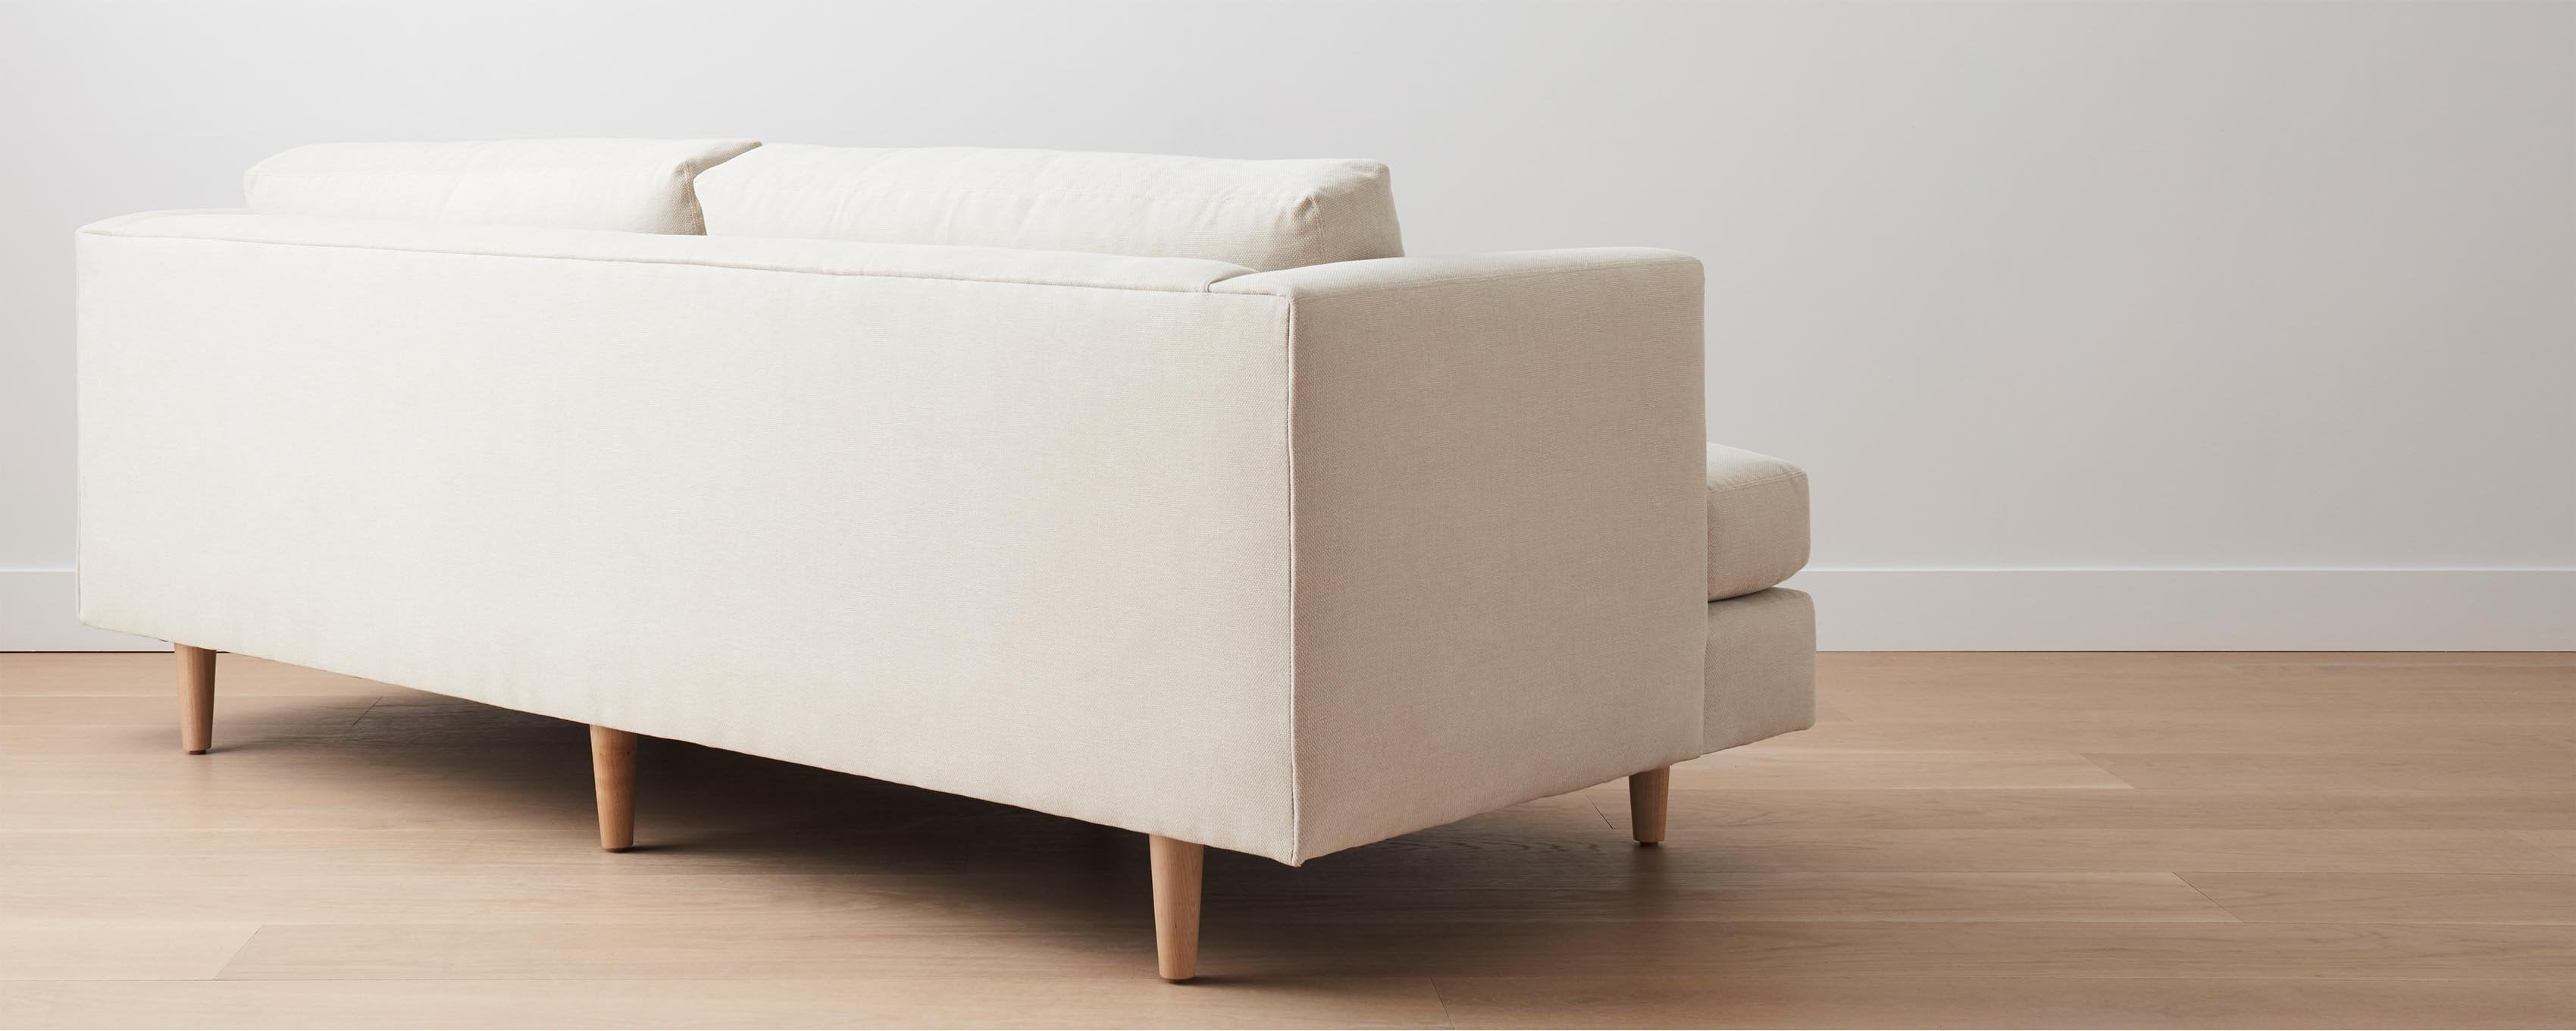 the homenature astor sofa